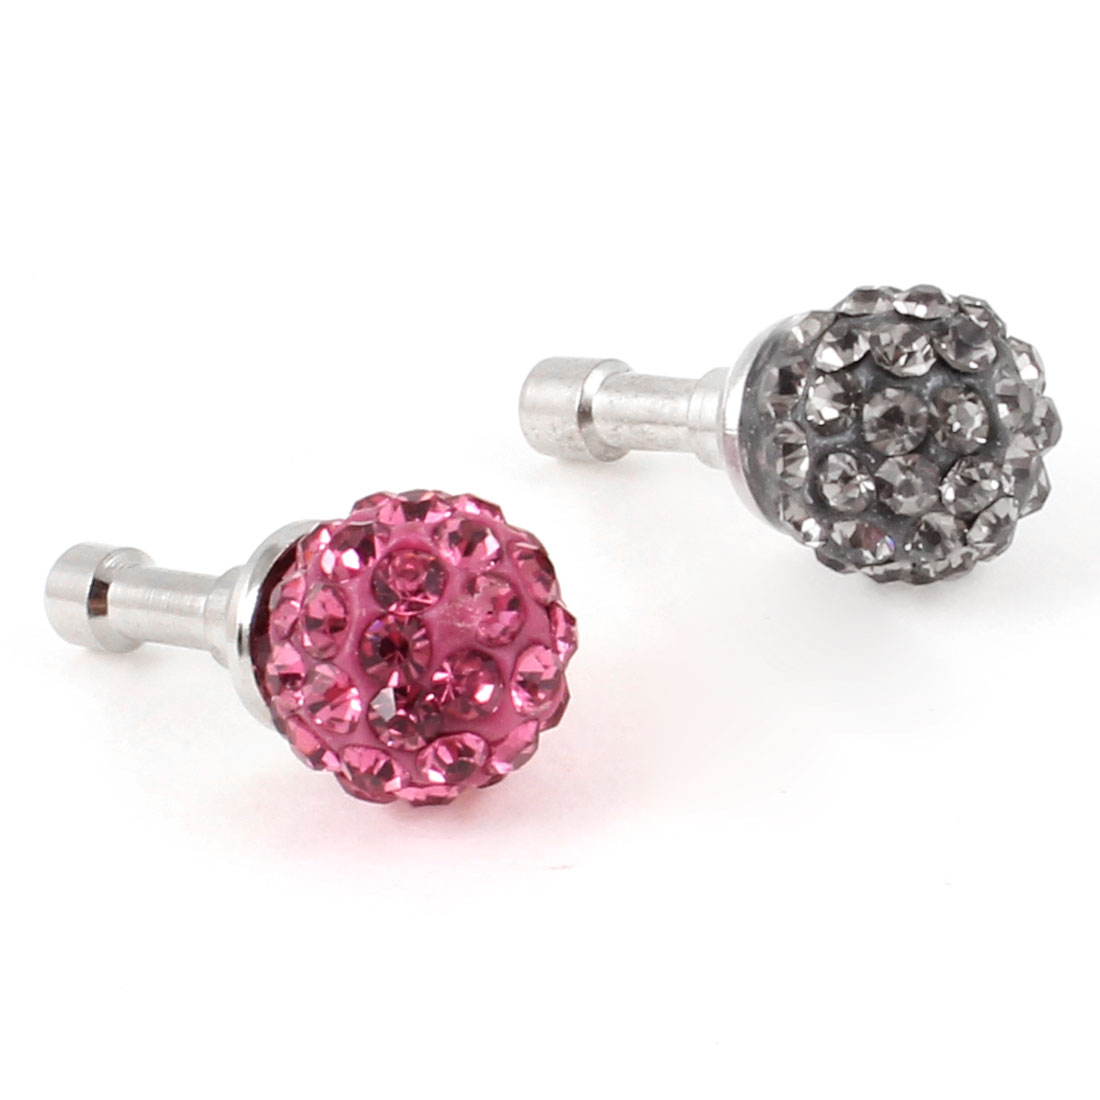 2Pcs Black Pink Rhinestone 3.5mm Anti Dust Earphone Jack Ear Plug for MP3 MP4